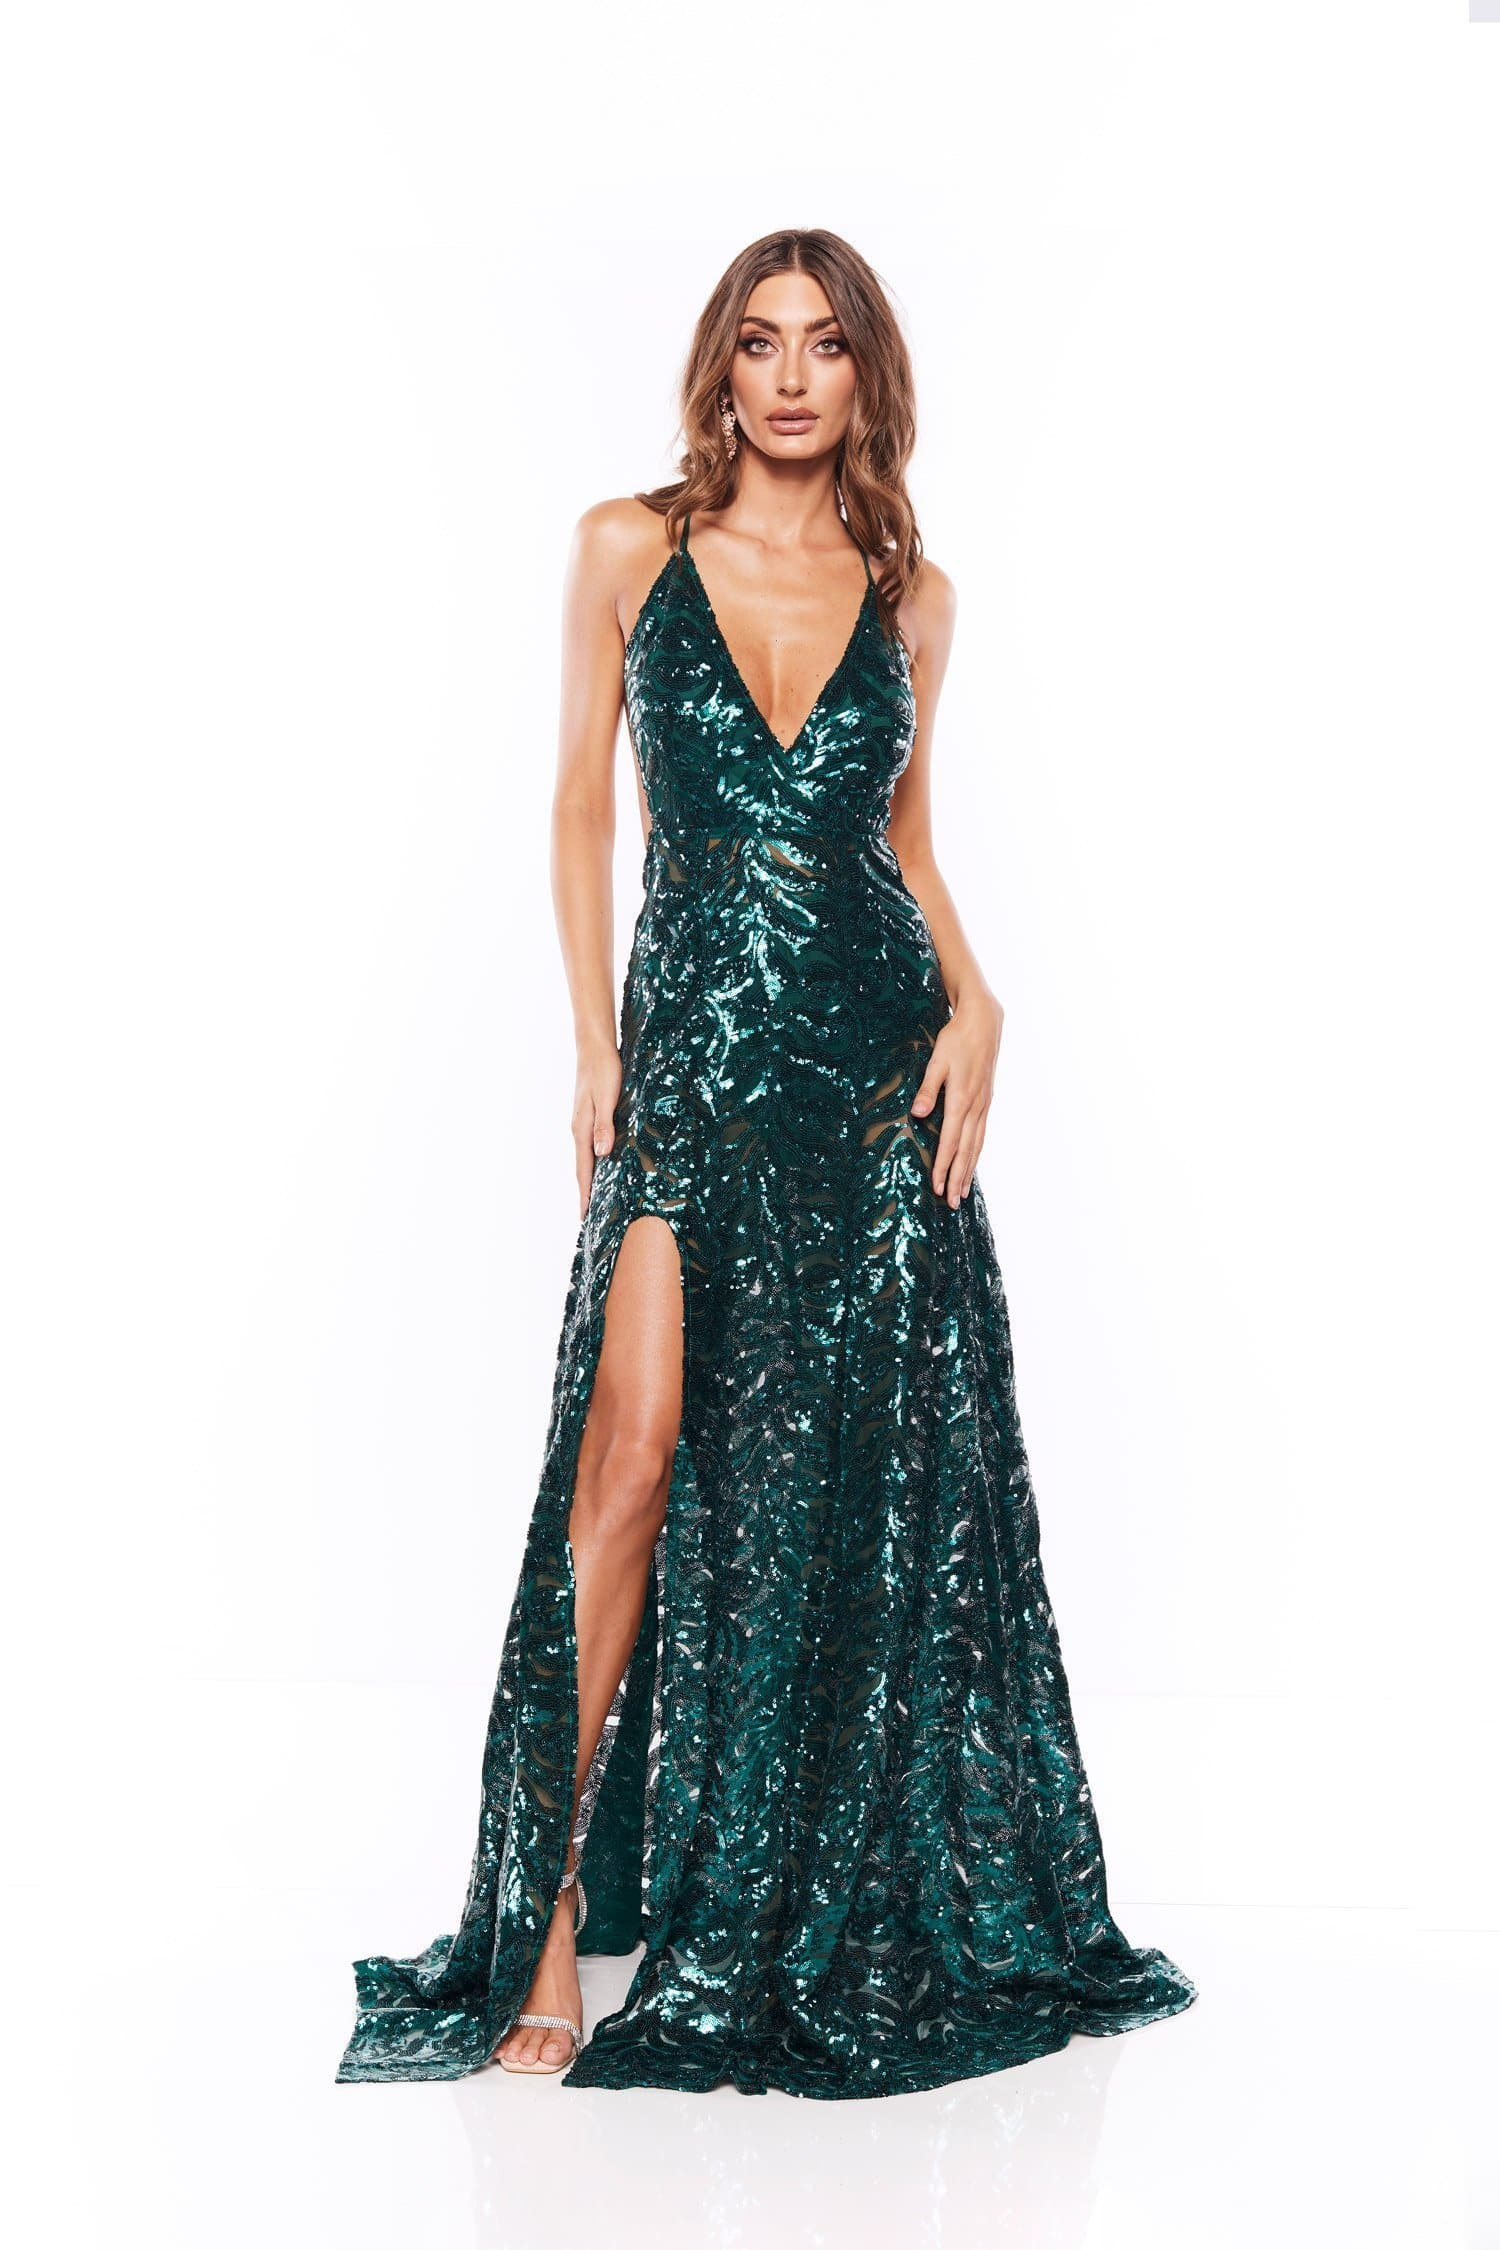 Samira - Emerald Sequin Gown with V Neck and Side Slit